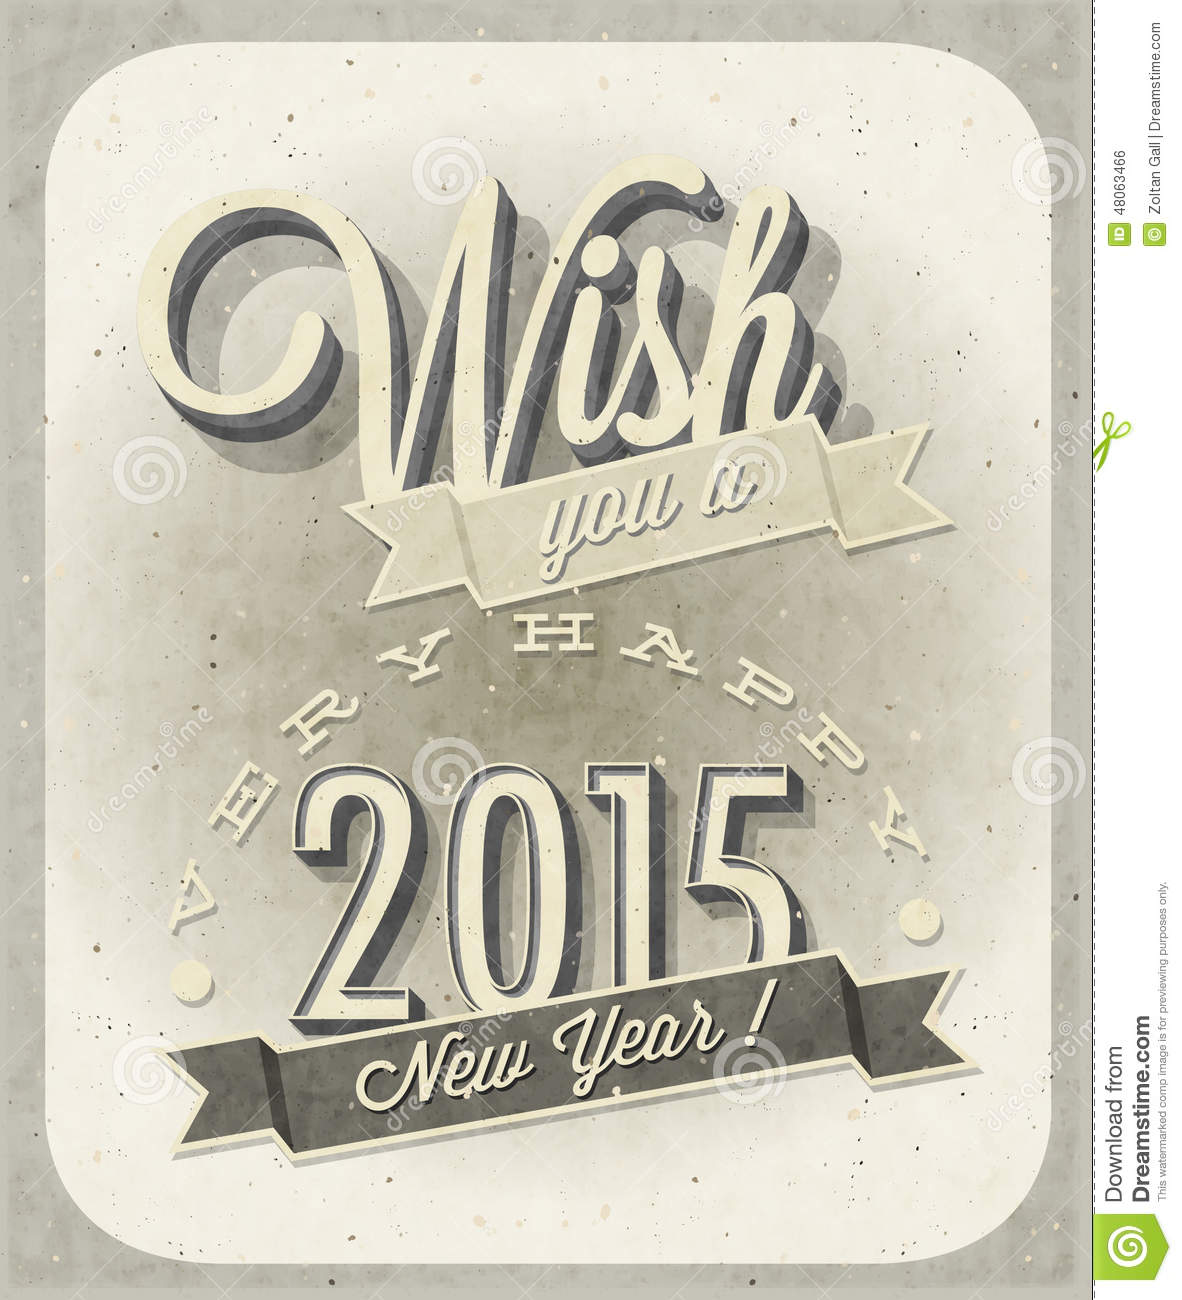 download vintage new years eve card stock vector illustration of holiday invitation